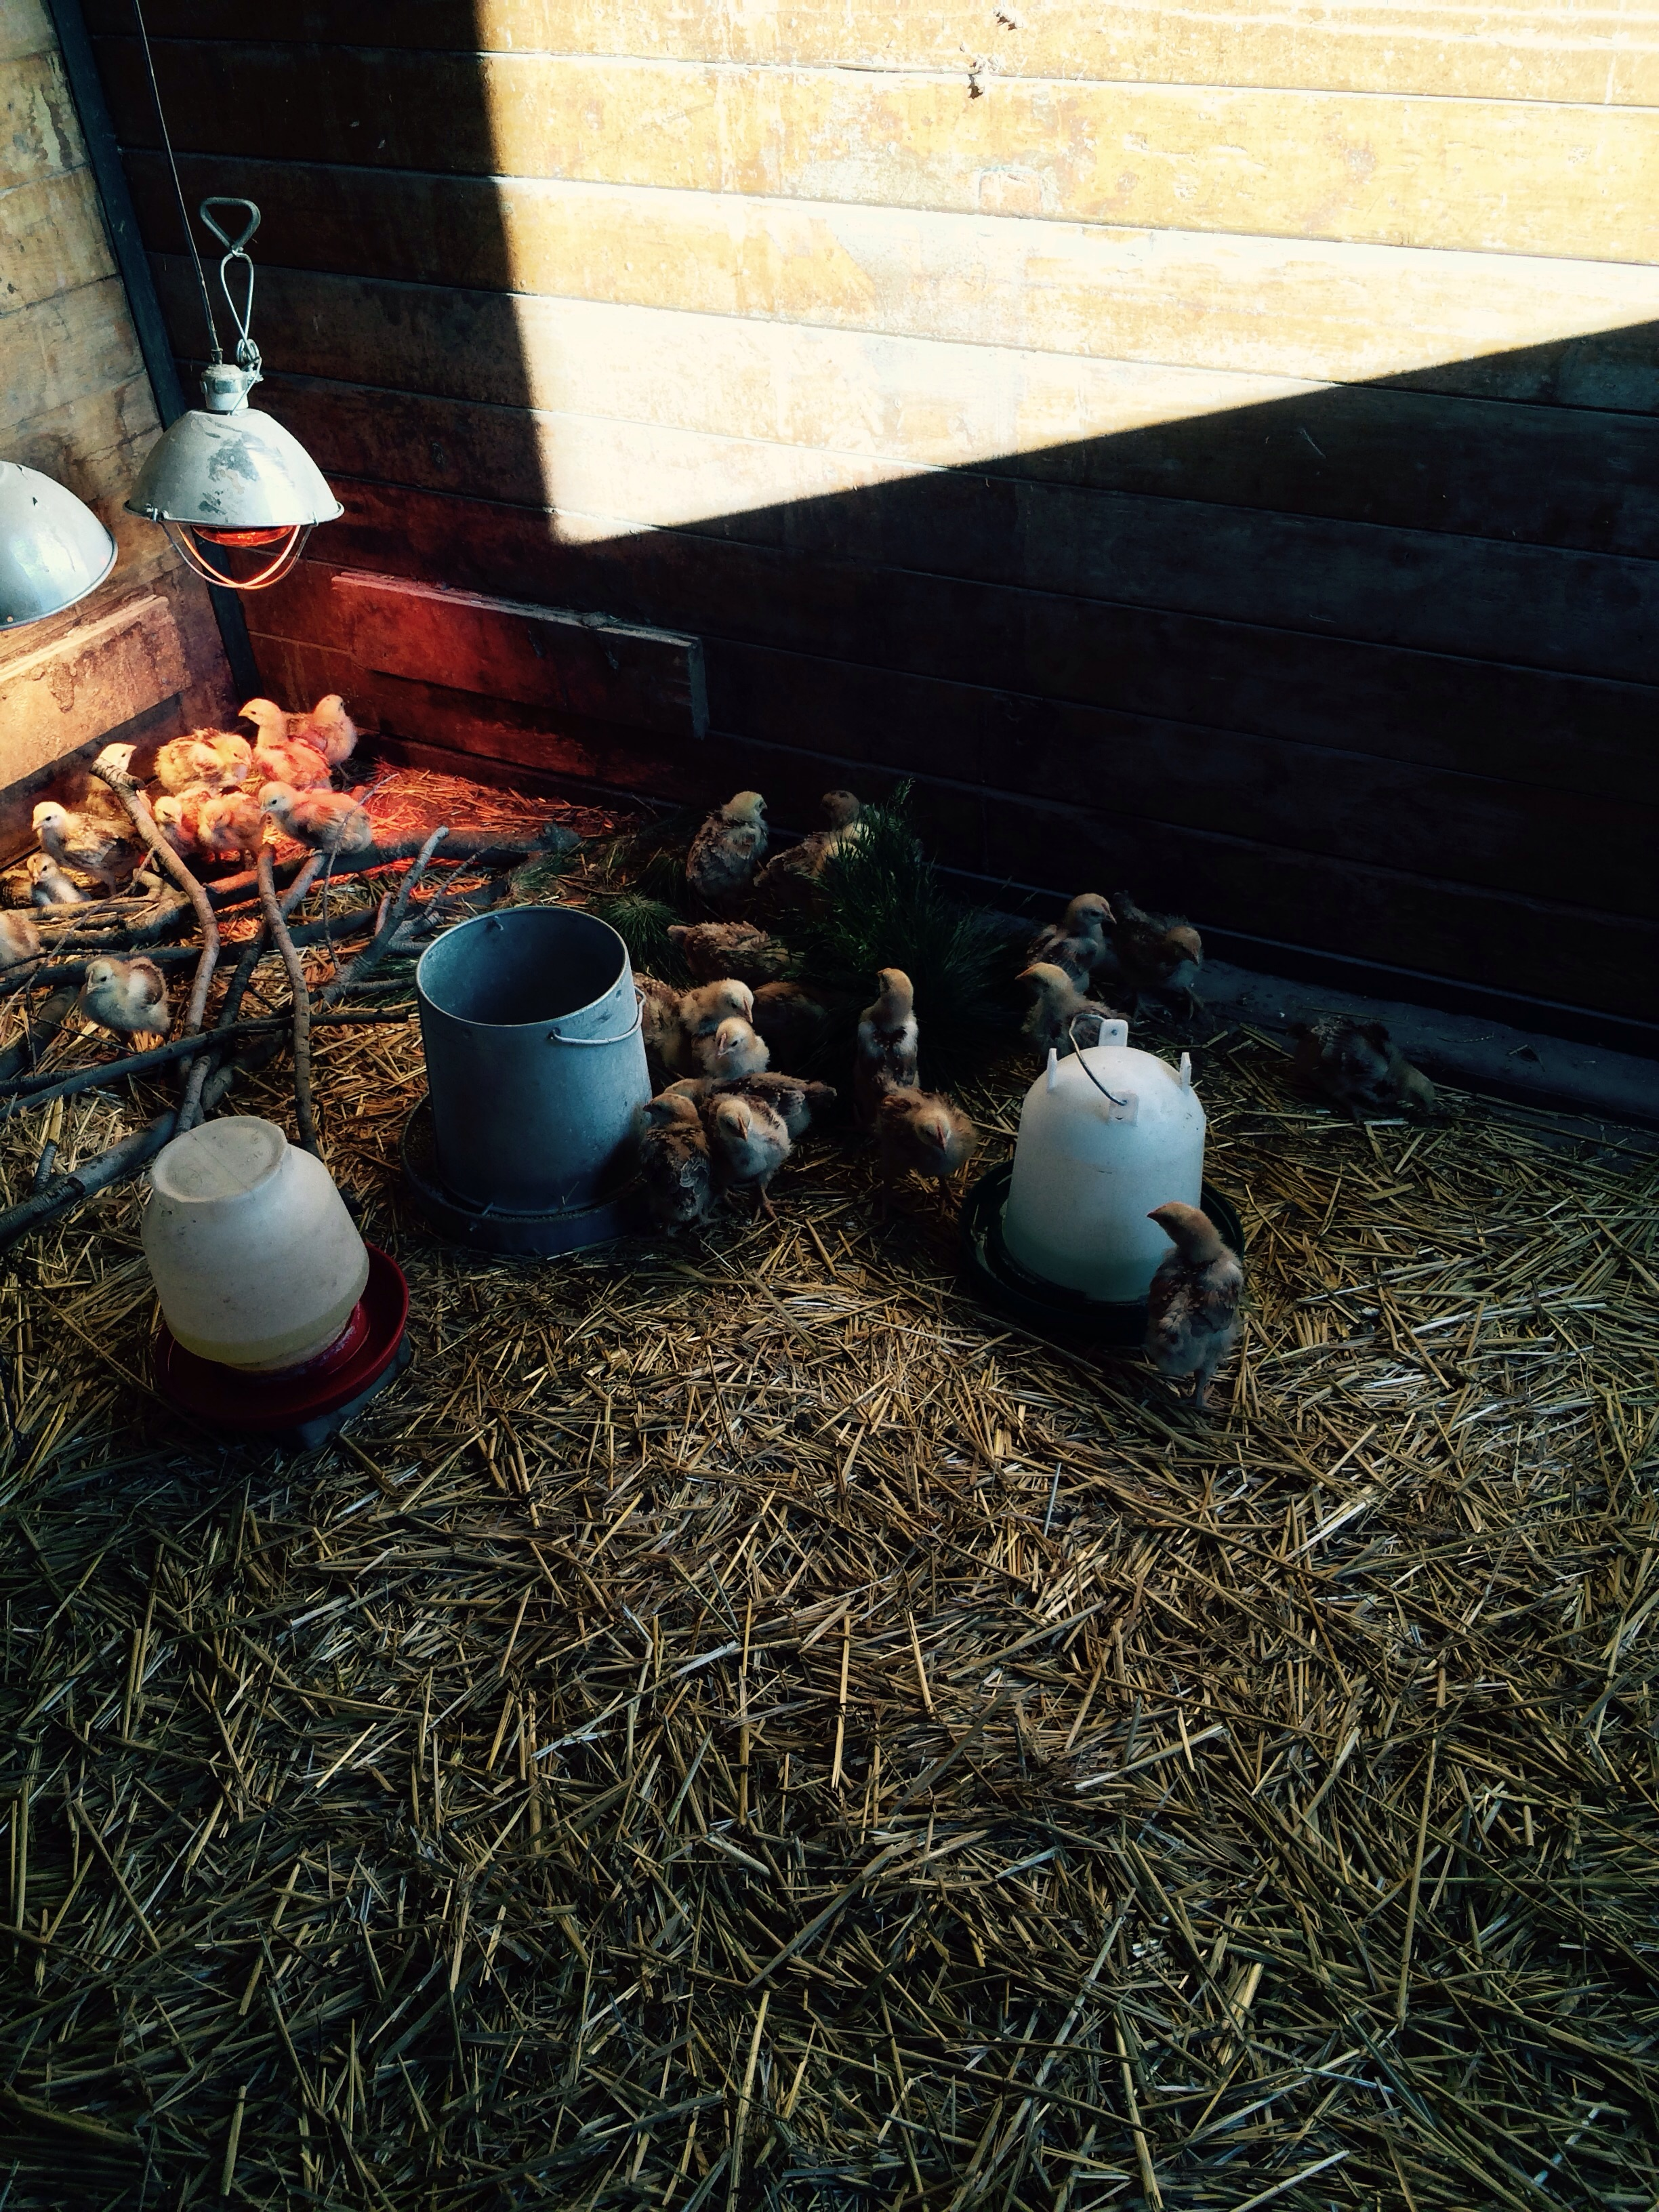 The chicks are doing well in the big barn we put sticks and grasses pine cones straw all so the chicks can fly run and play happy animals is what we work hard to do